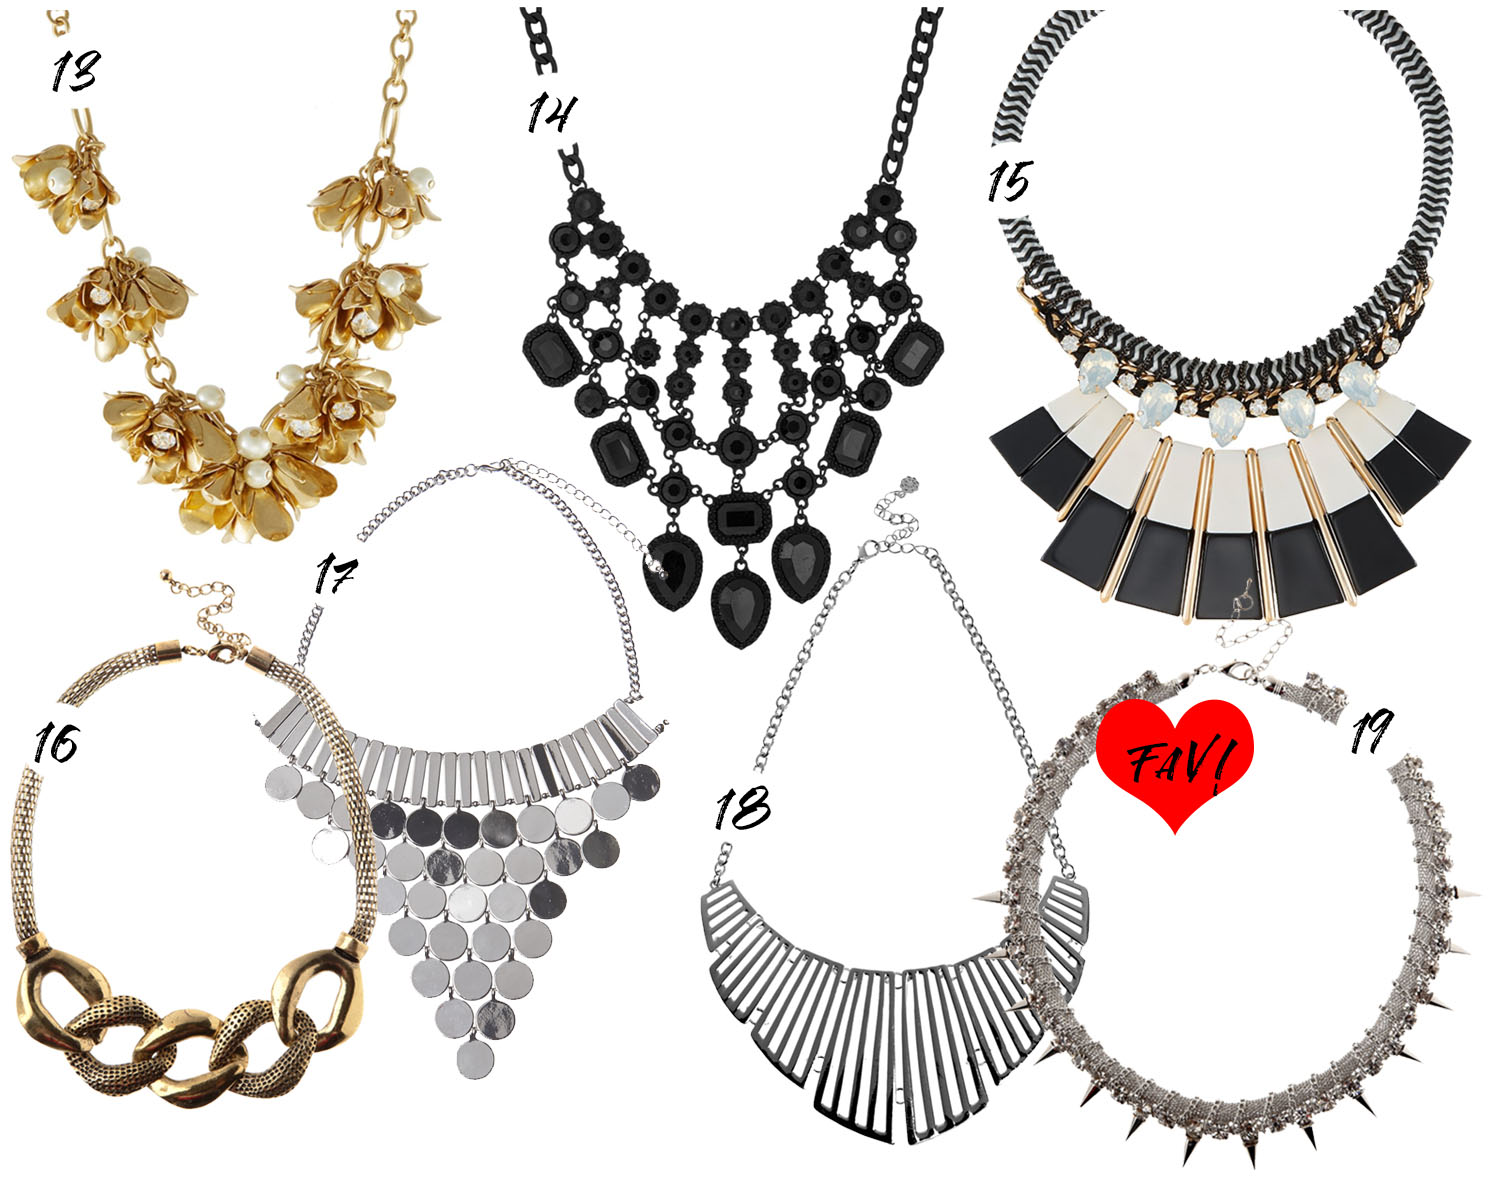 Modern Chic Statement Necklaces